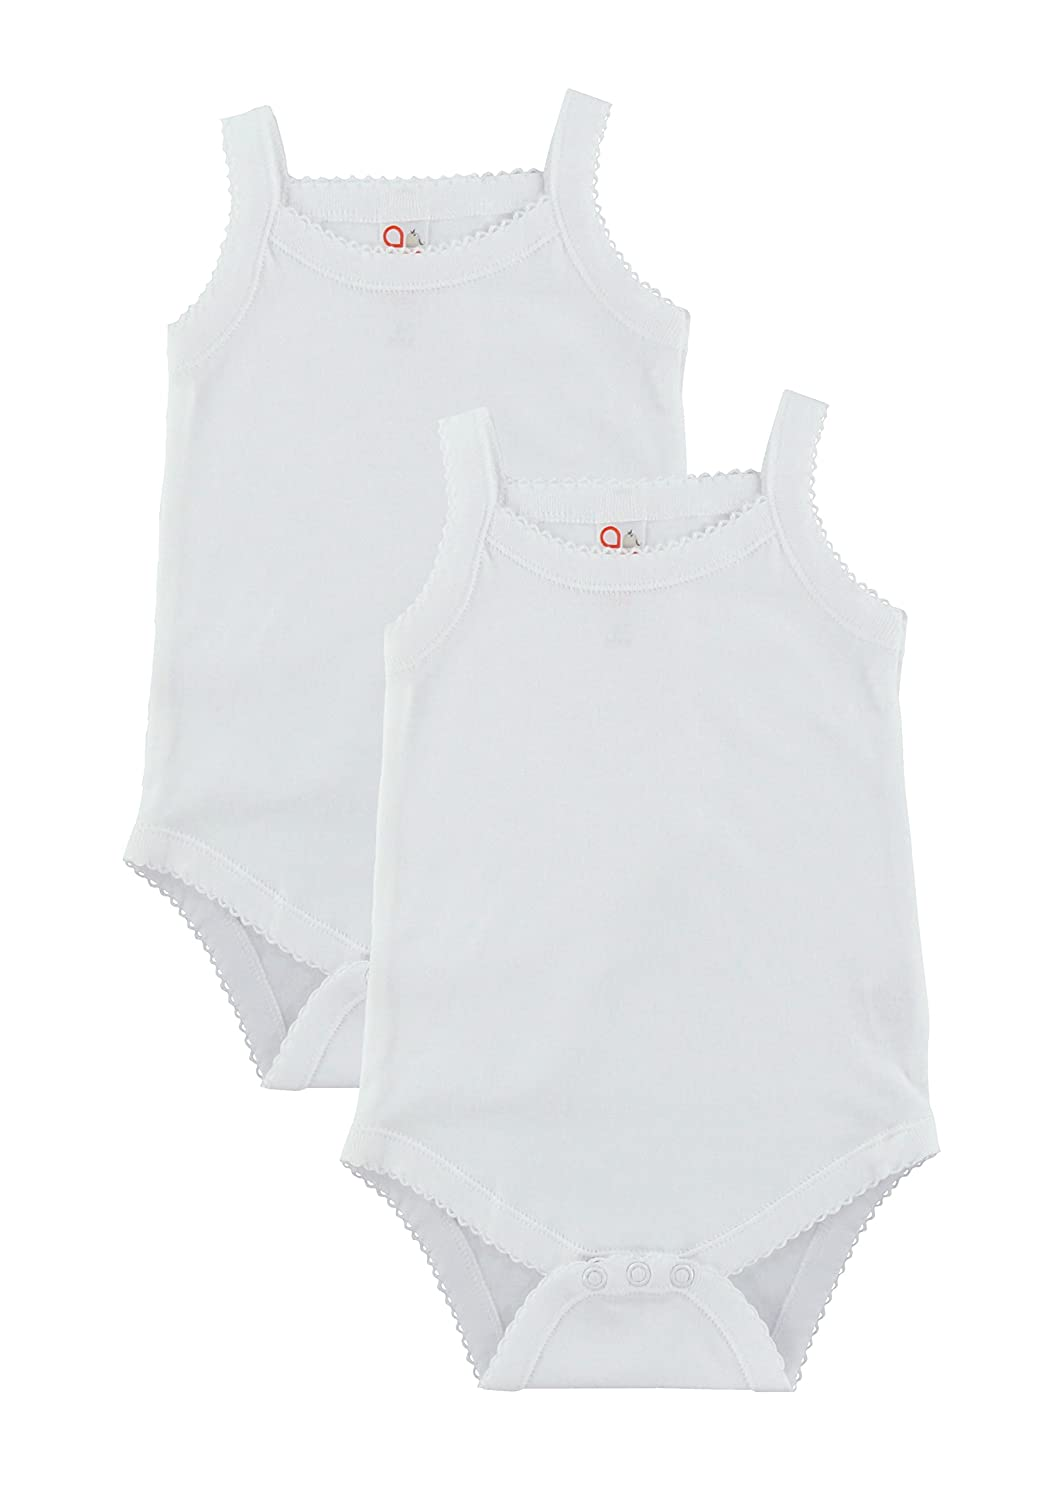 32e3c151515291 TOP QUALITY  Provide your family with only the best. Baby Jay products are  made from the finest quality materials and feature unmatched designs.